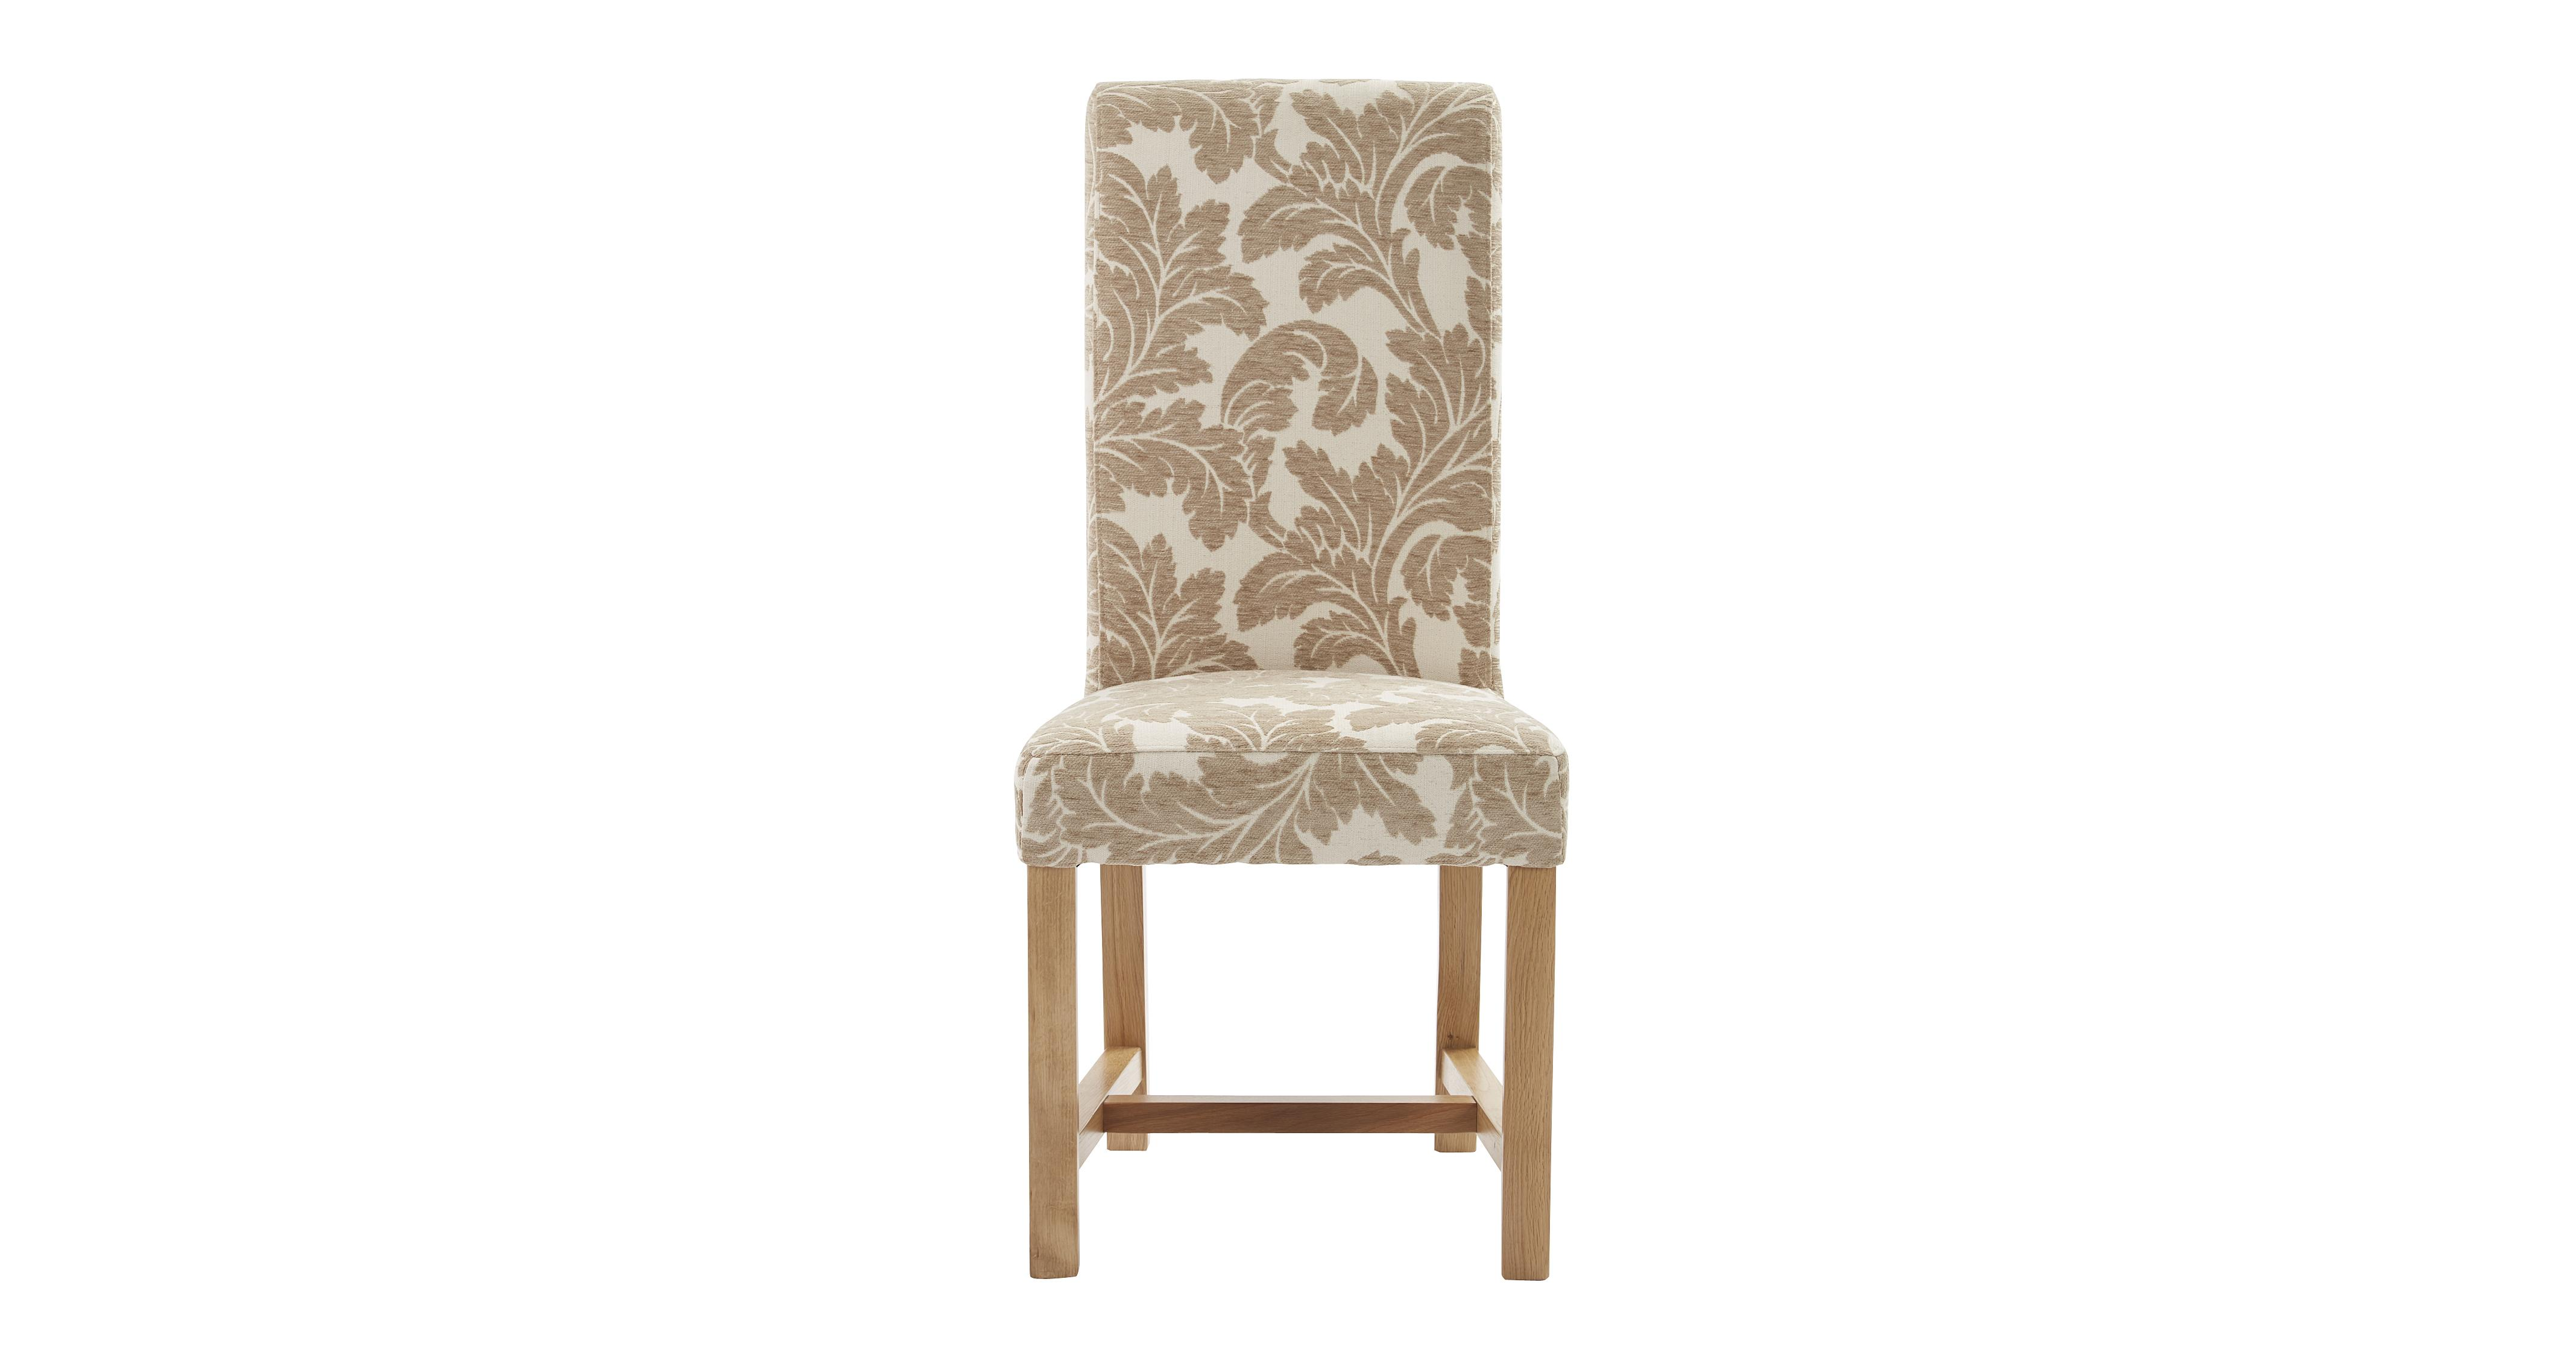 Chateaux chicago floral upholstered dining chair chicago for Printed upholstered dining chairs